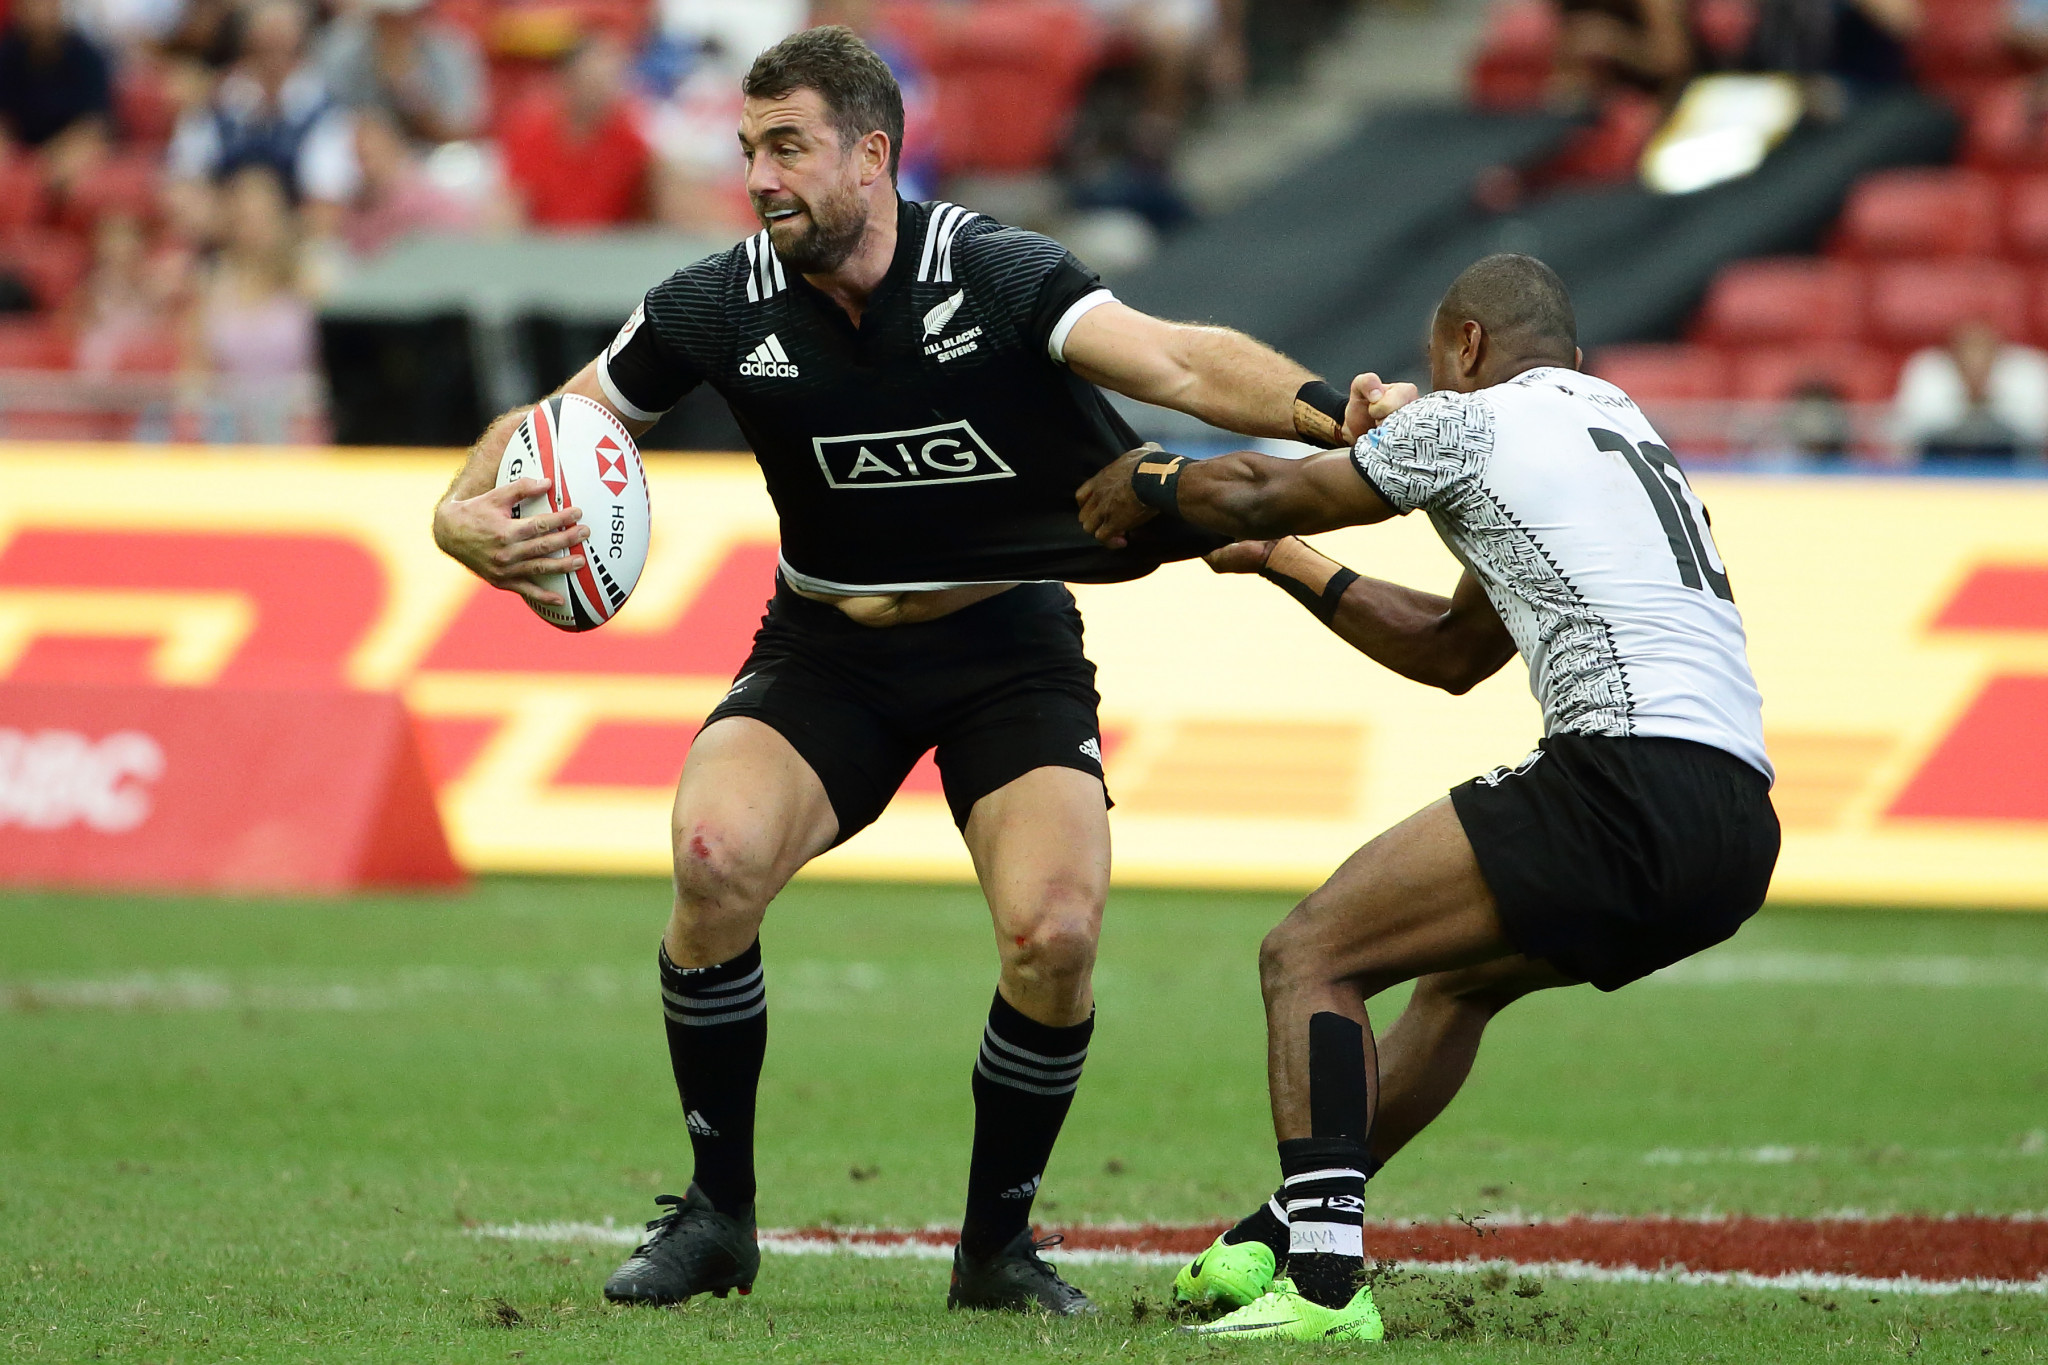 New Zealand will hope to defend their men's title at the Rugby World Cup Sevens in San Francisco ©Getty Images